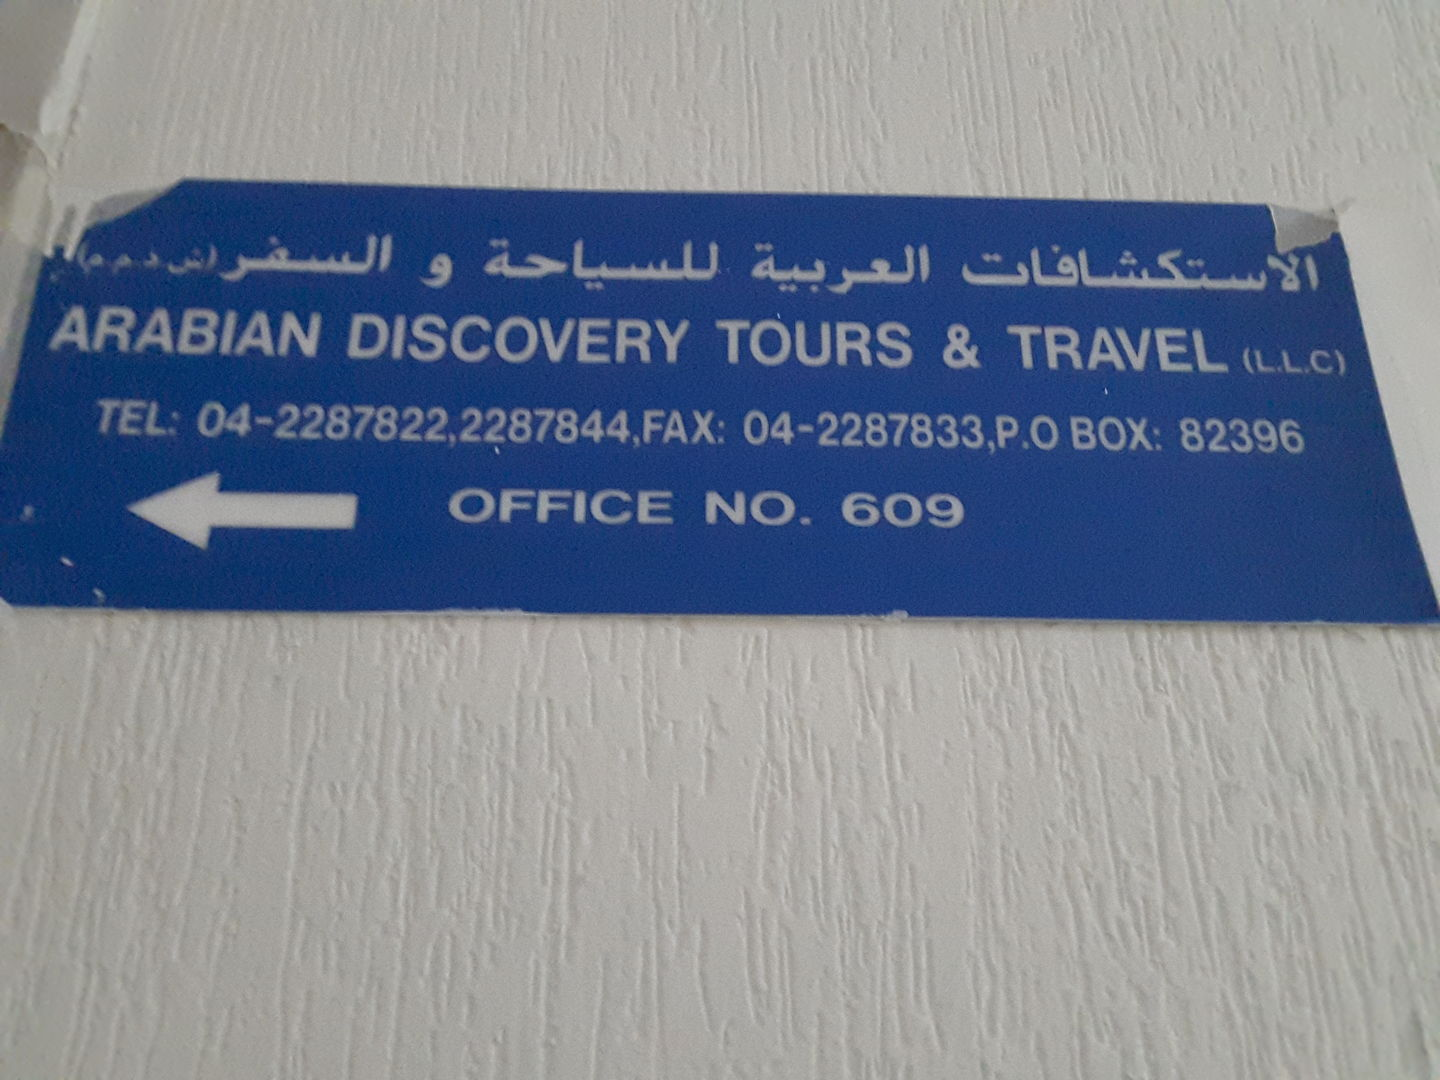 Walif-business-arabian-discovery-tours-travel